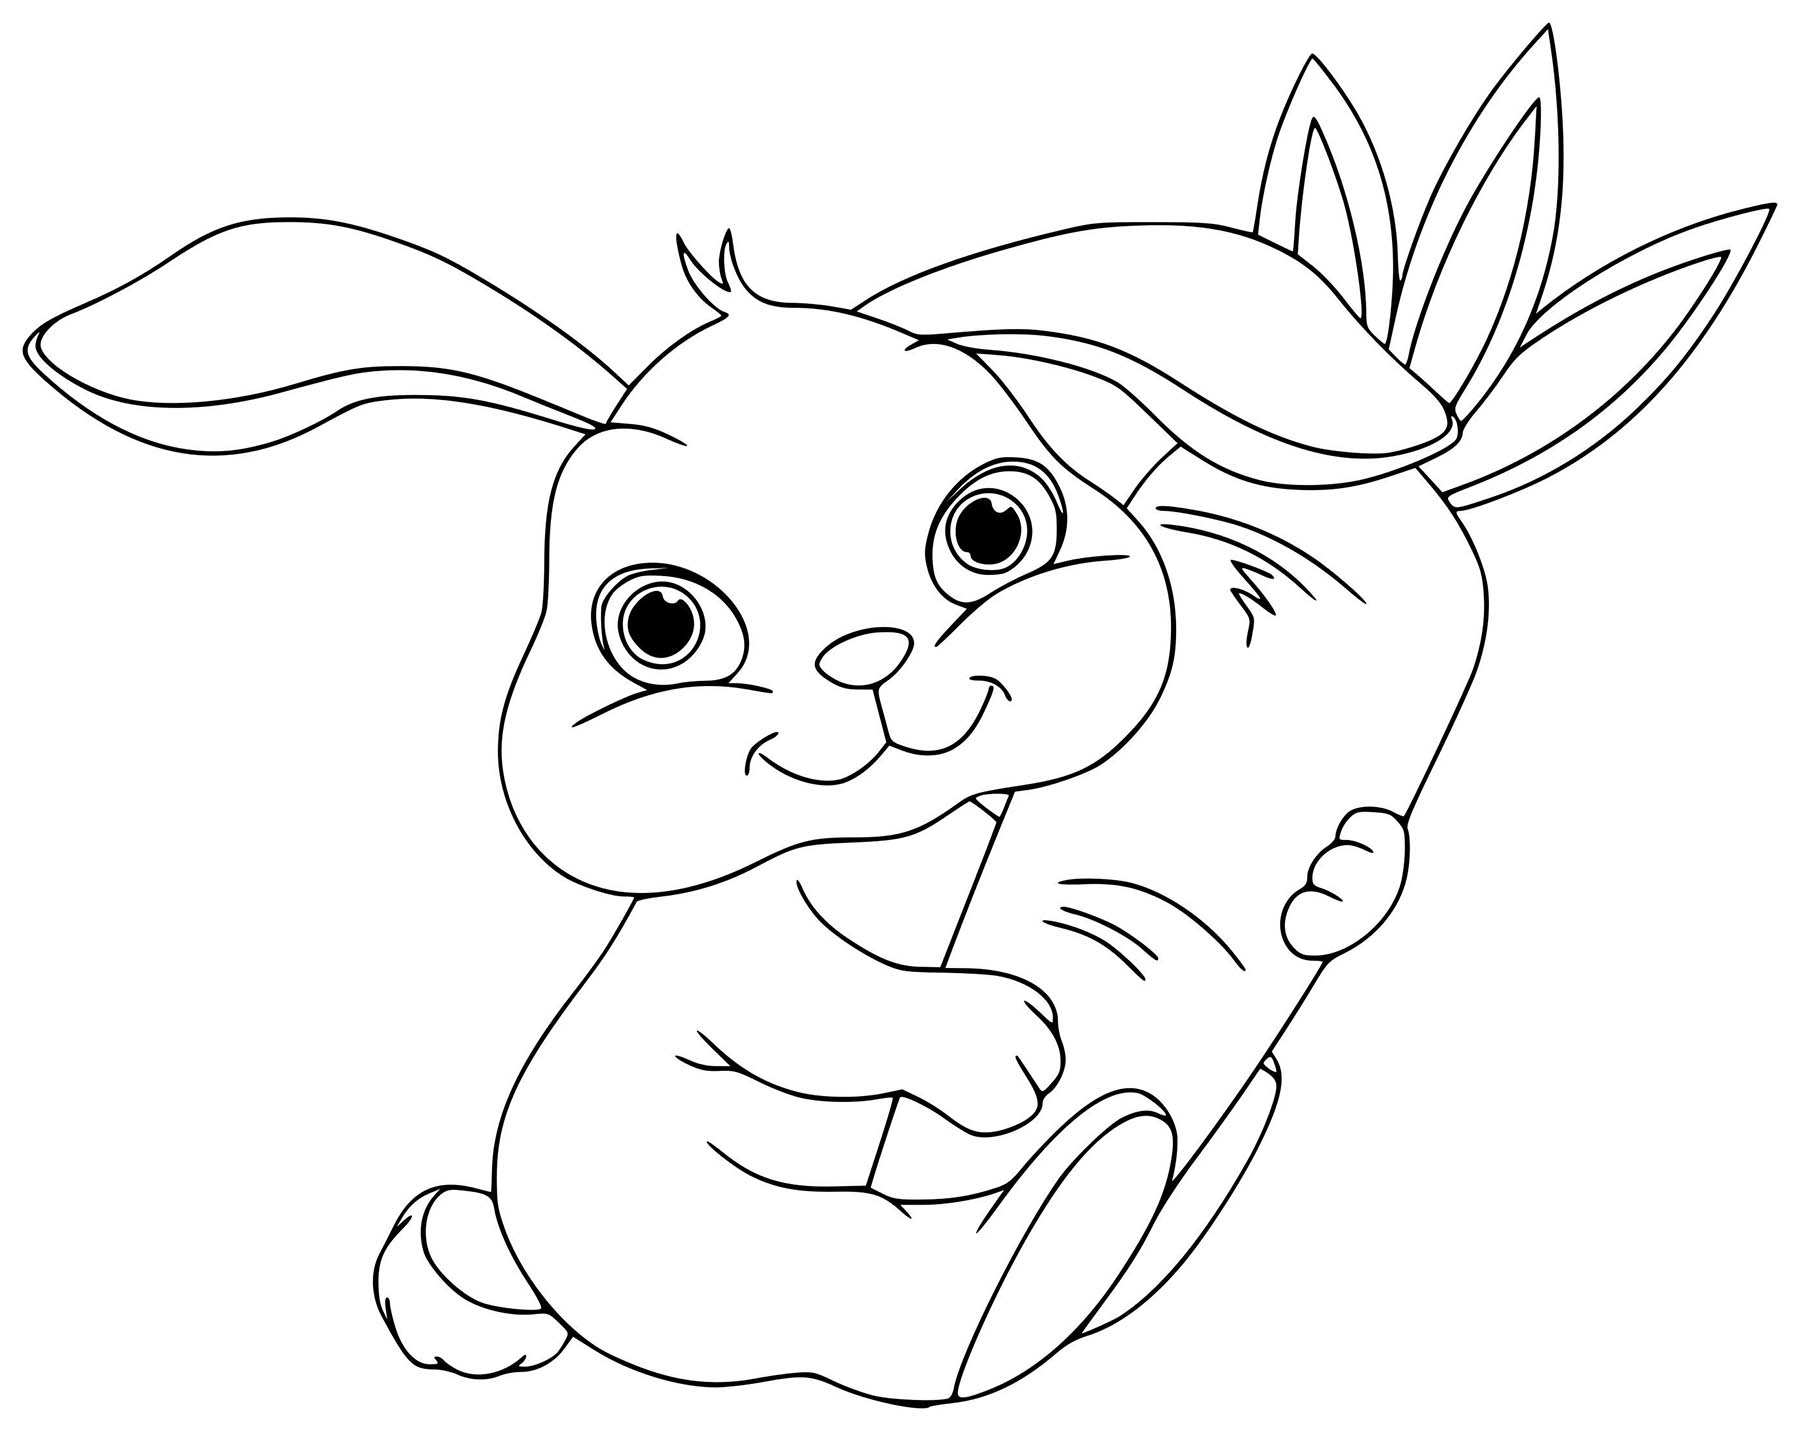 rabbit pictures for kids for colouring rabbit to print for free rabbit kids coloring pages for pictures colouring for rabbit kids